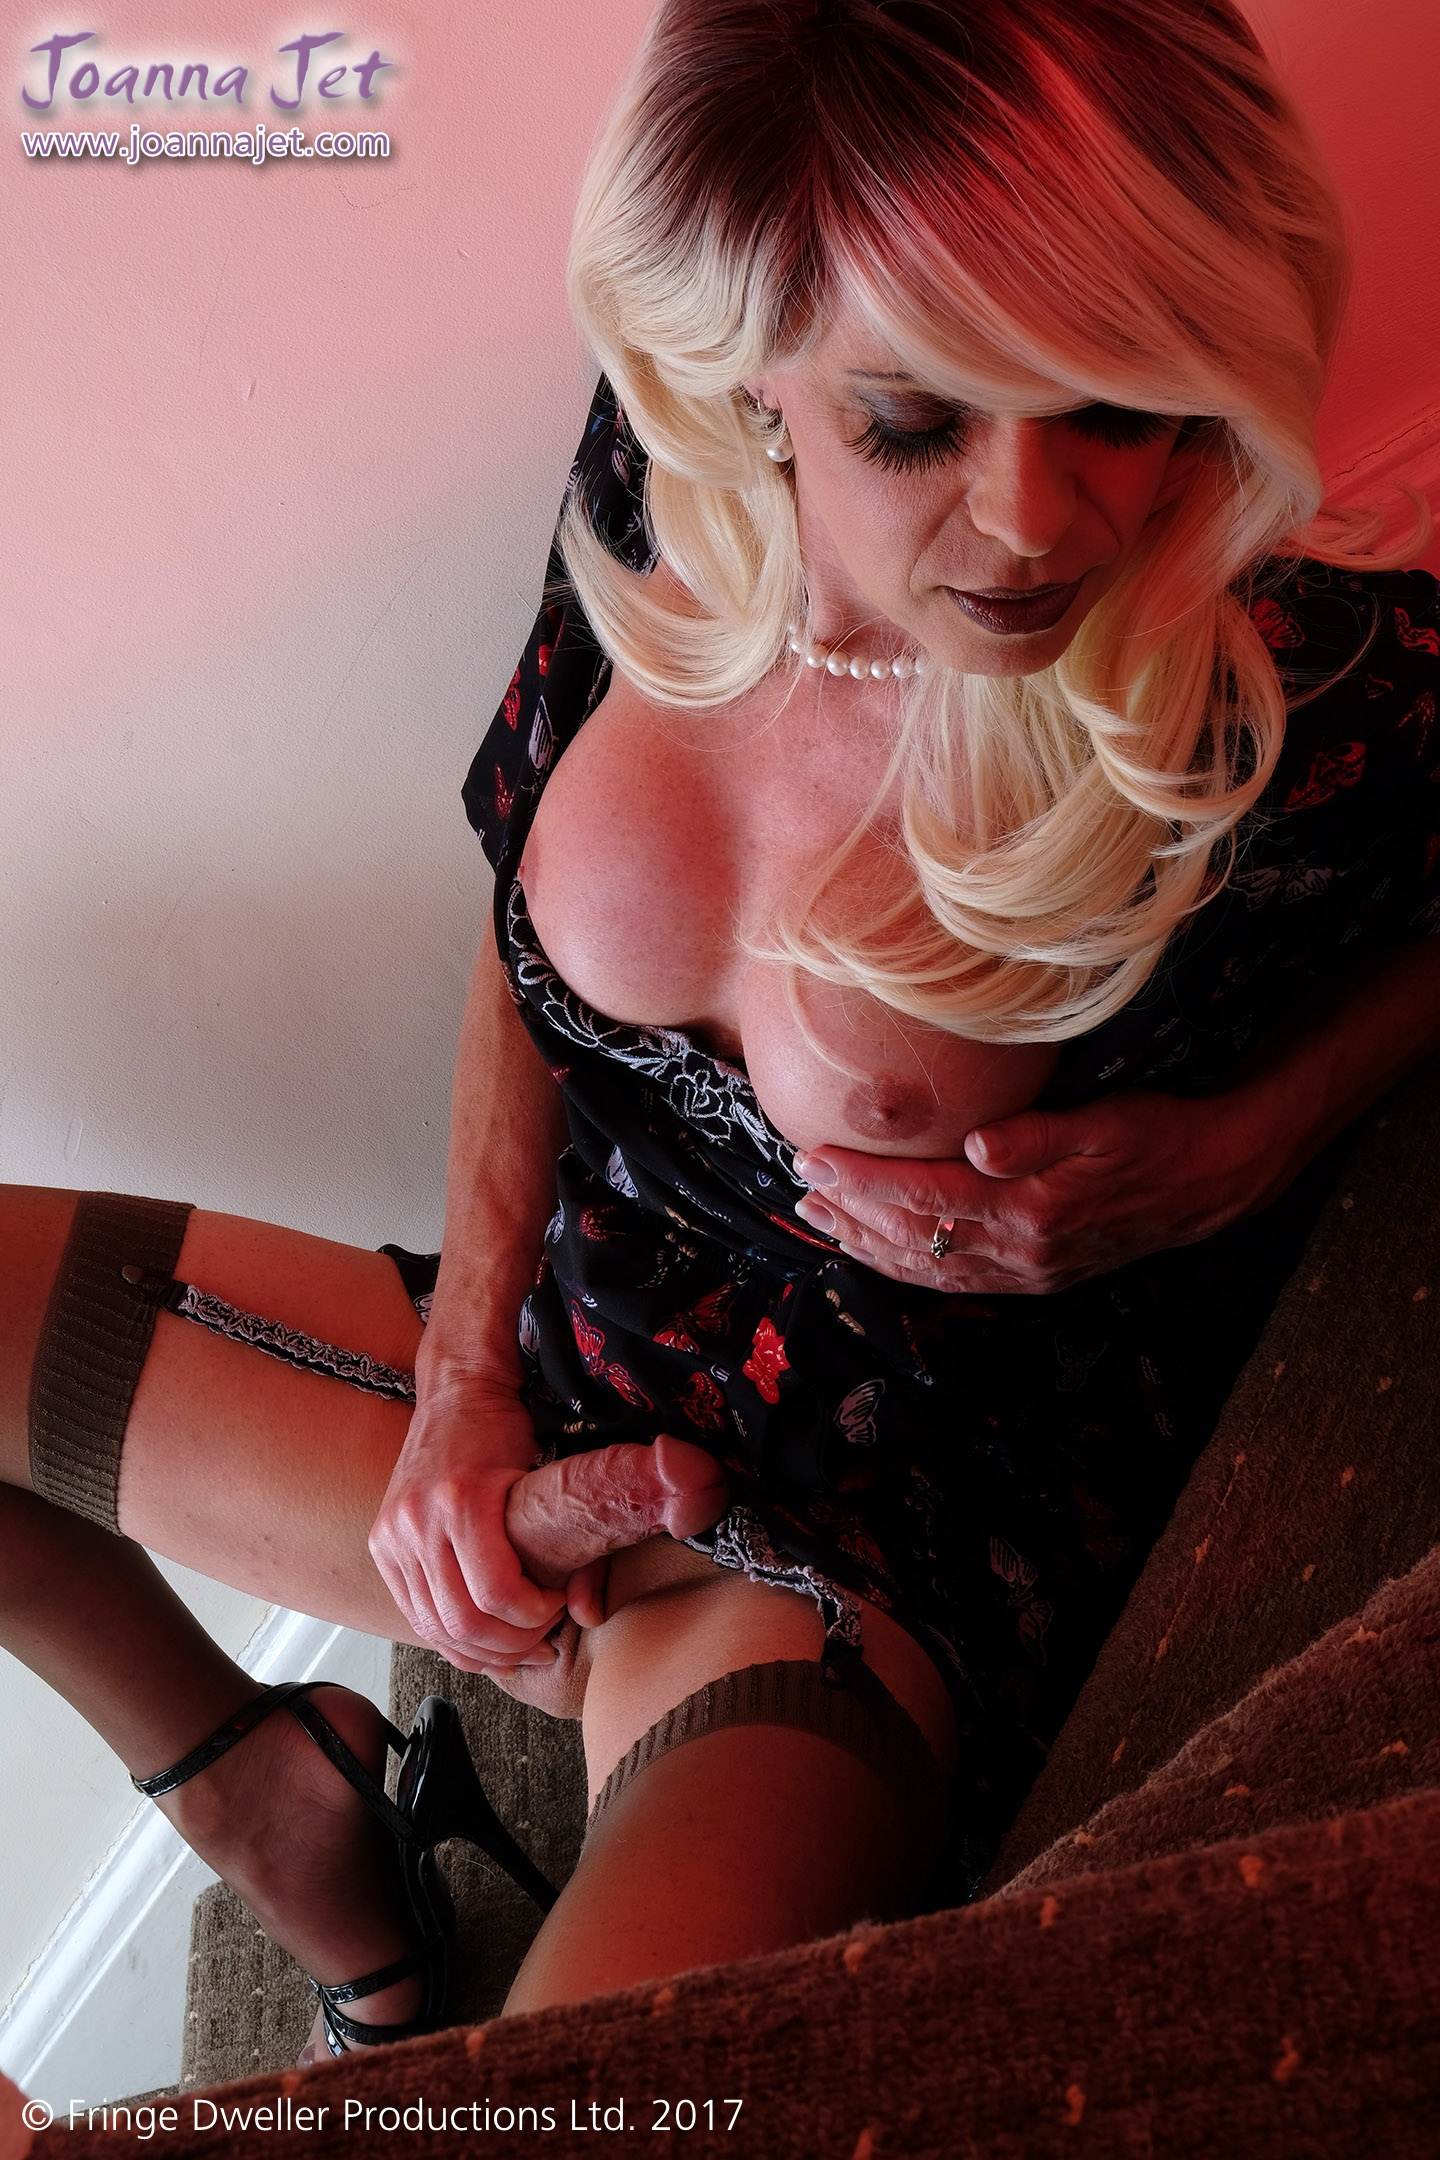 Click here to see much more of Joanna Jet!!!